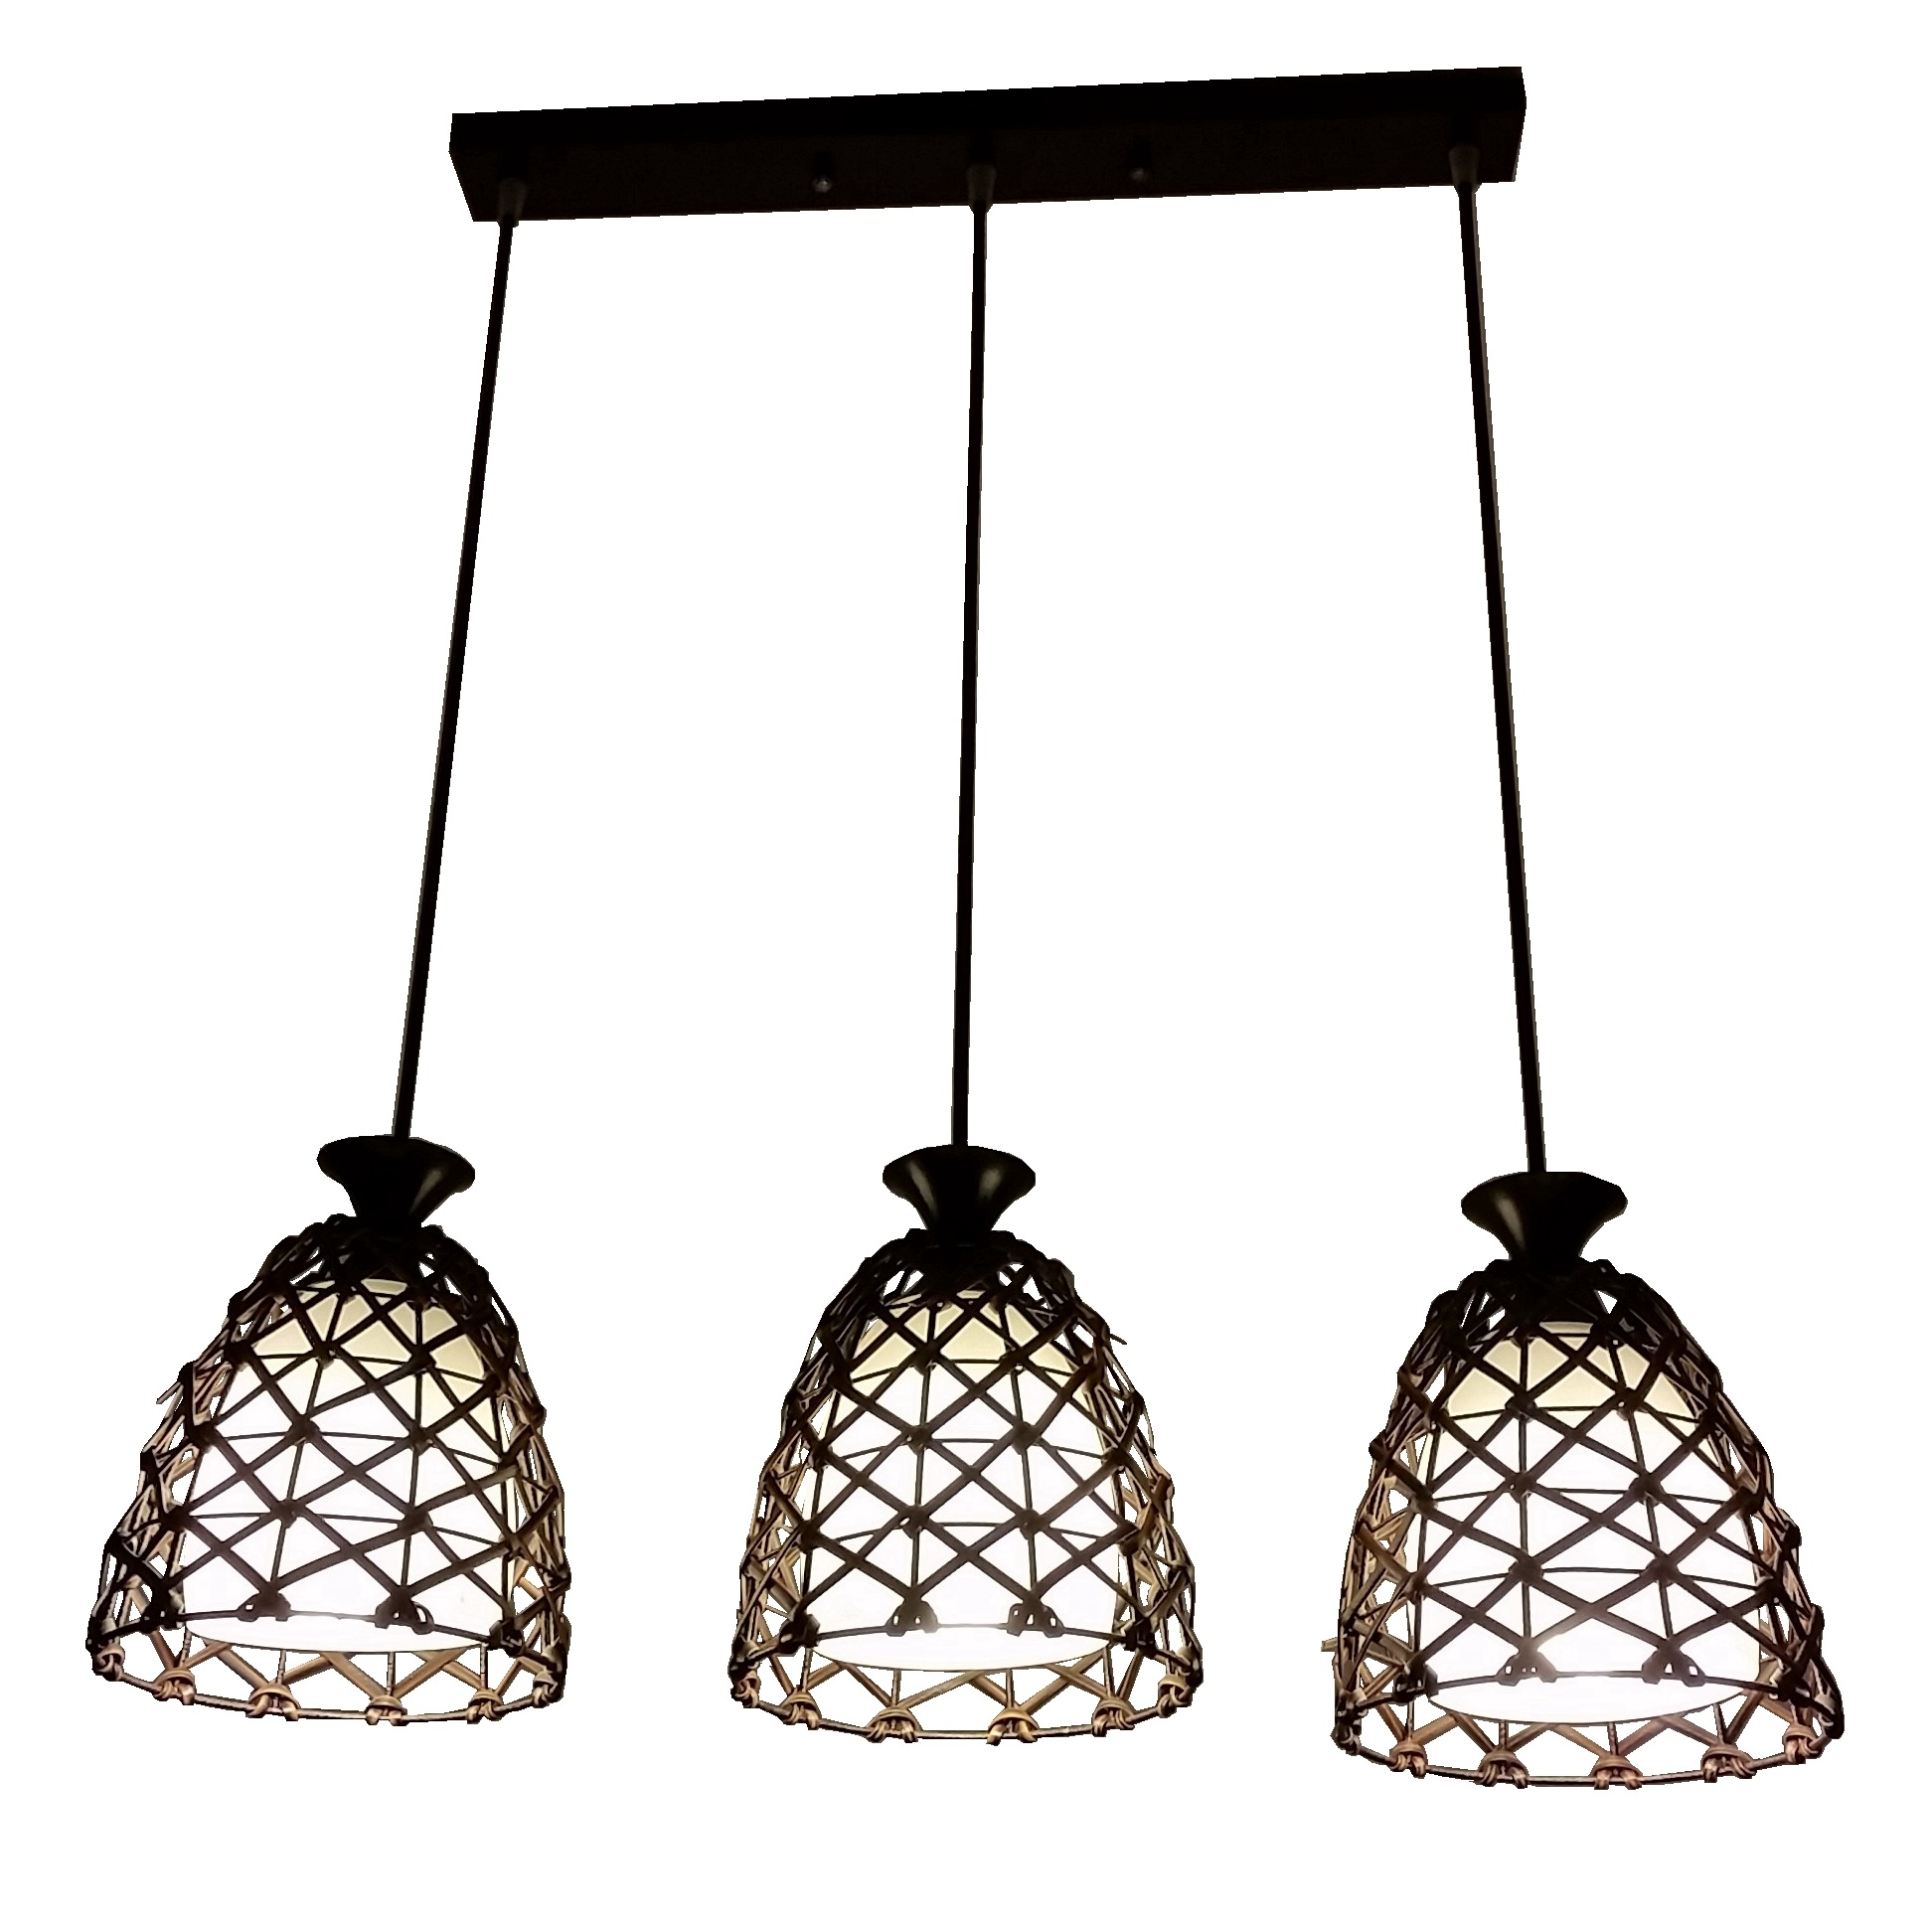 PL1919 3 Hanging Pendant Lamp L Brilliant Source Lighting